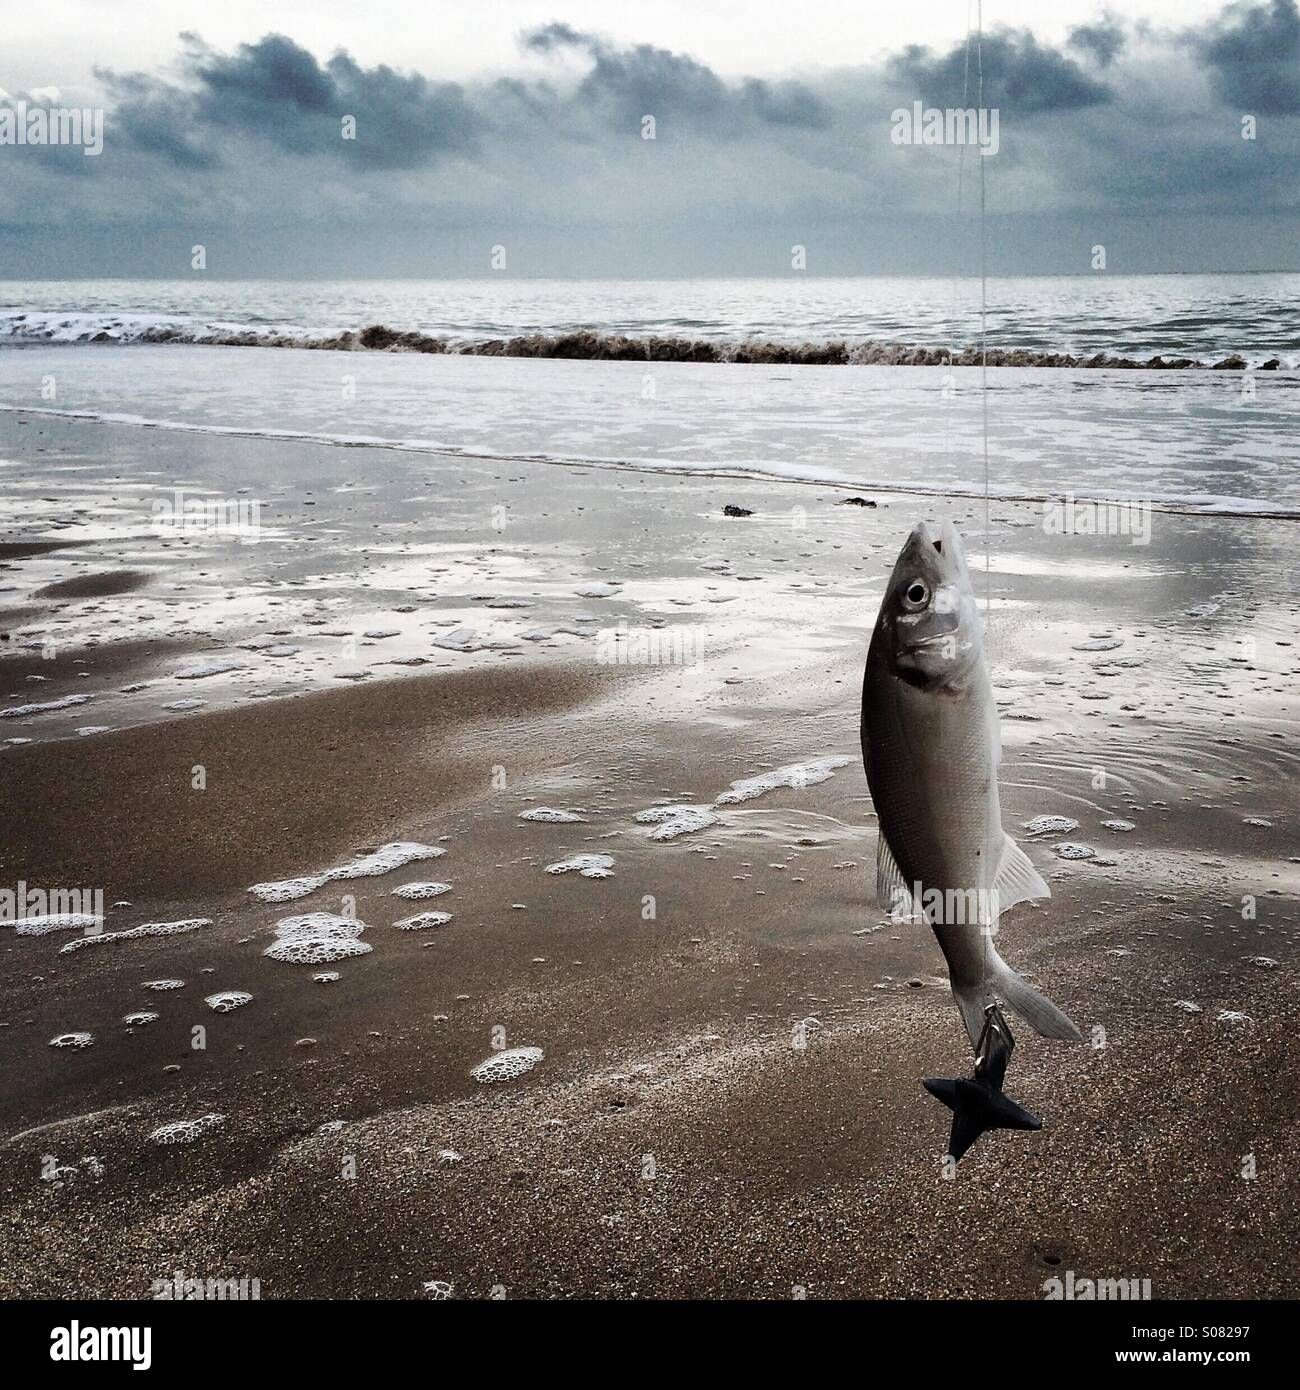 Catch of the Day - Stock Image